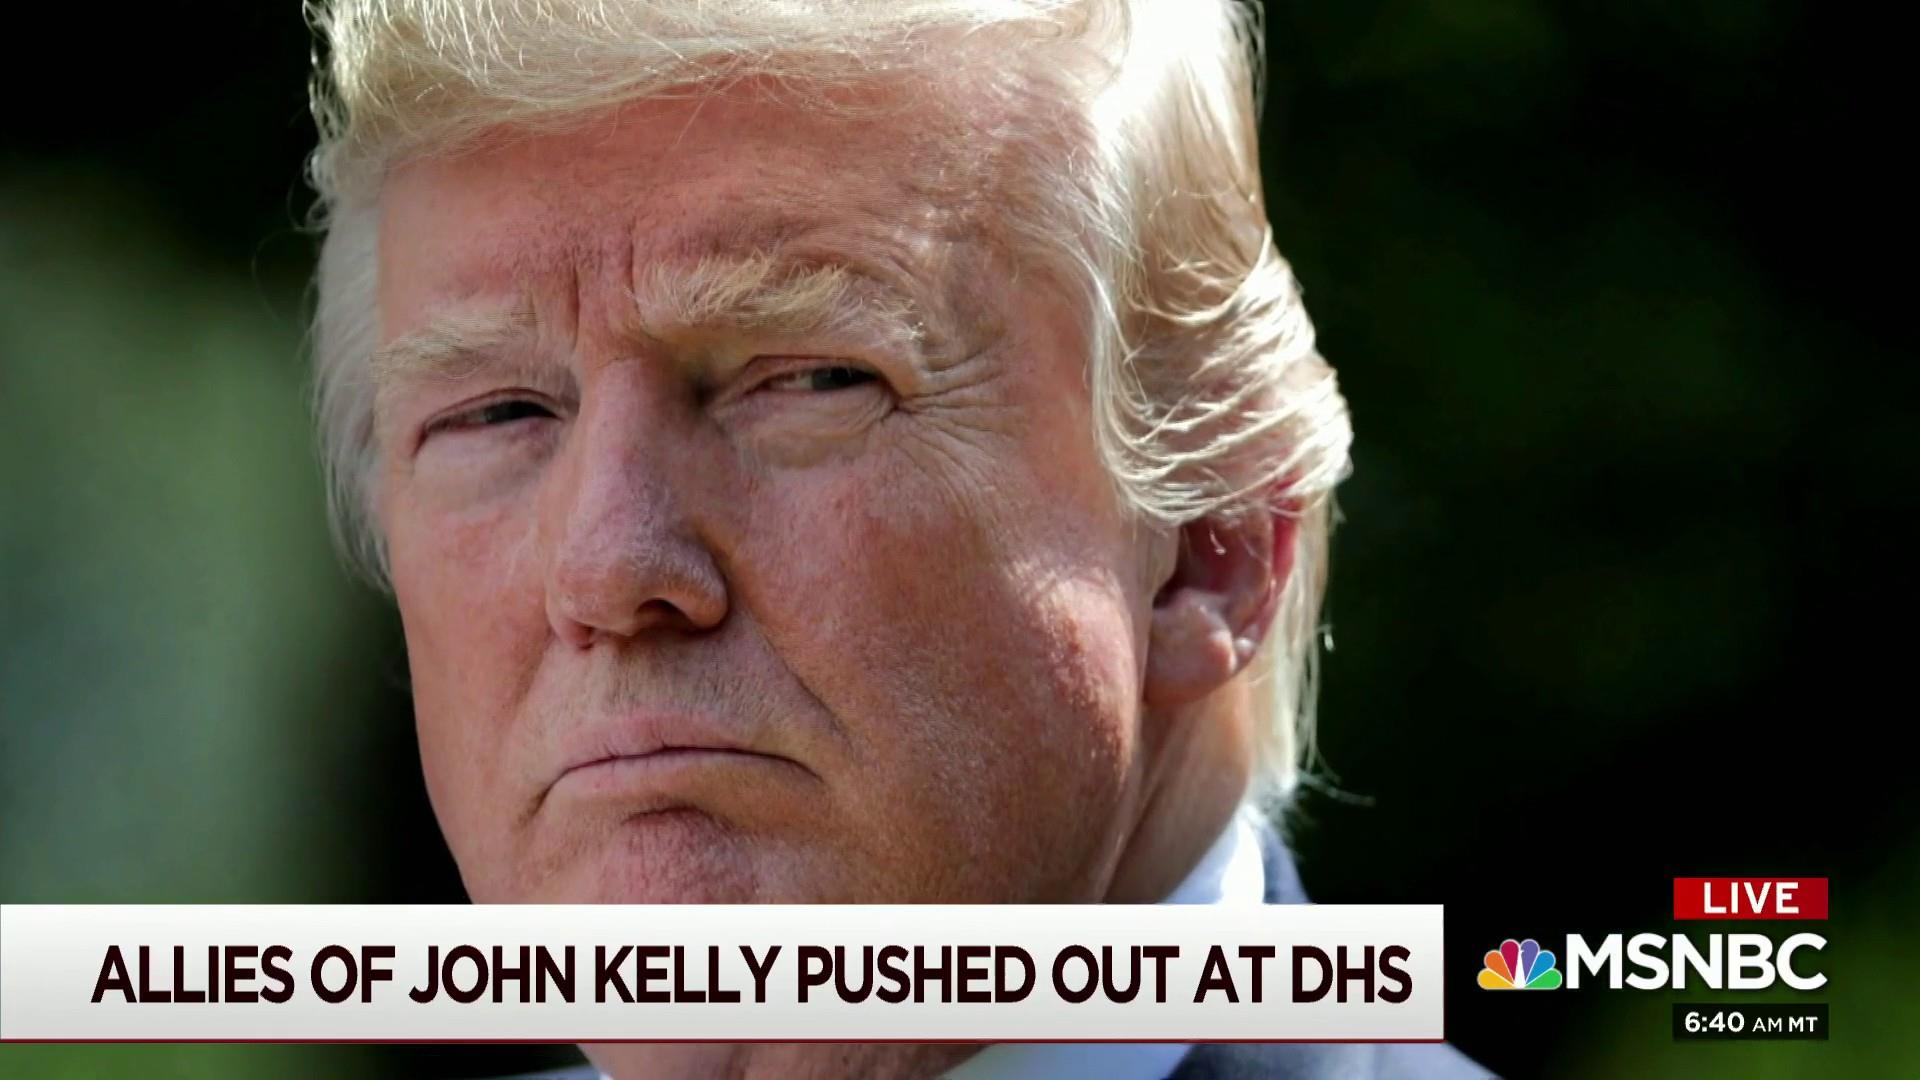 Trump's fury incites upheaval at DHS